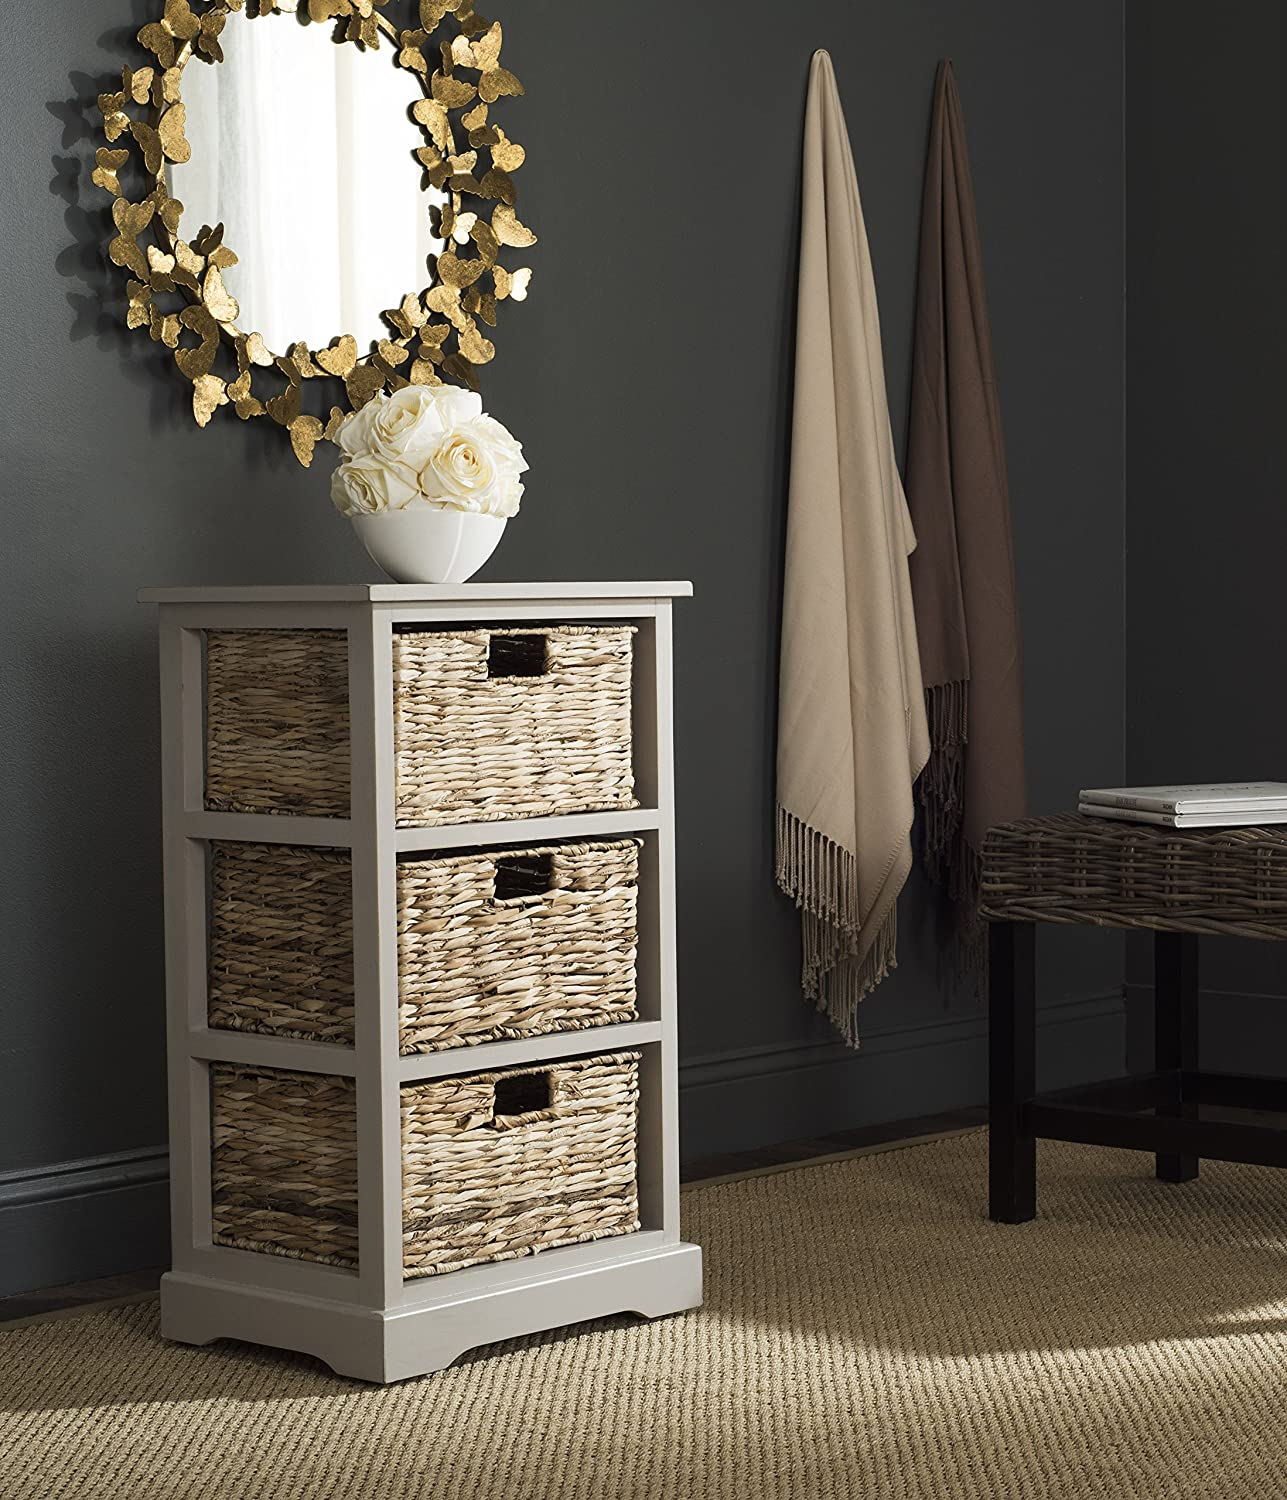 Safavieh American Homes Collection Halle Distressed Black 3 Wicker Basket Storage Side Table